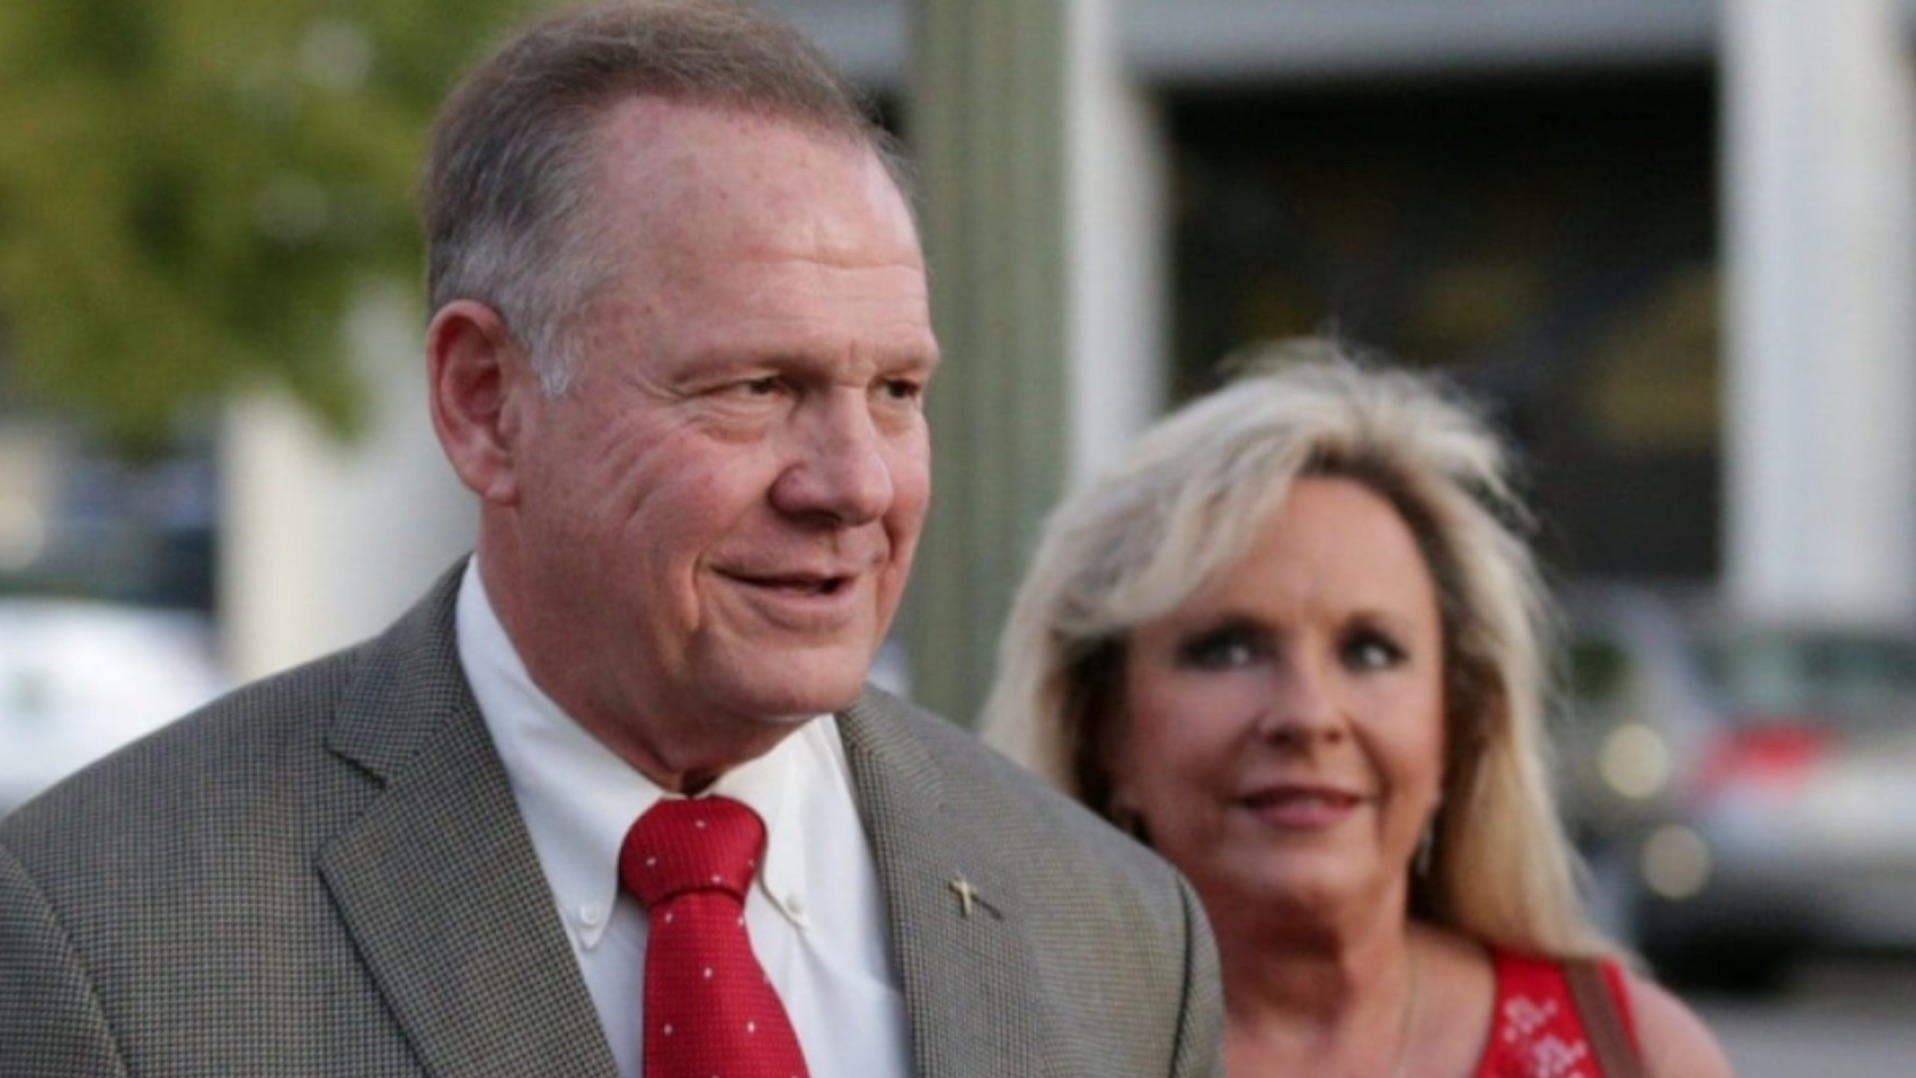 Moore: 'I have not been guilty of sexual misconduct with anyone'